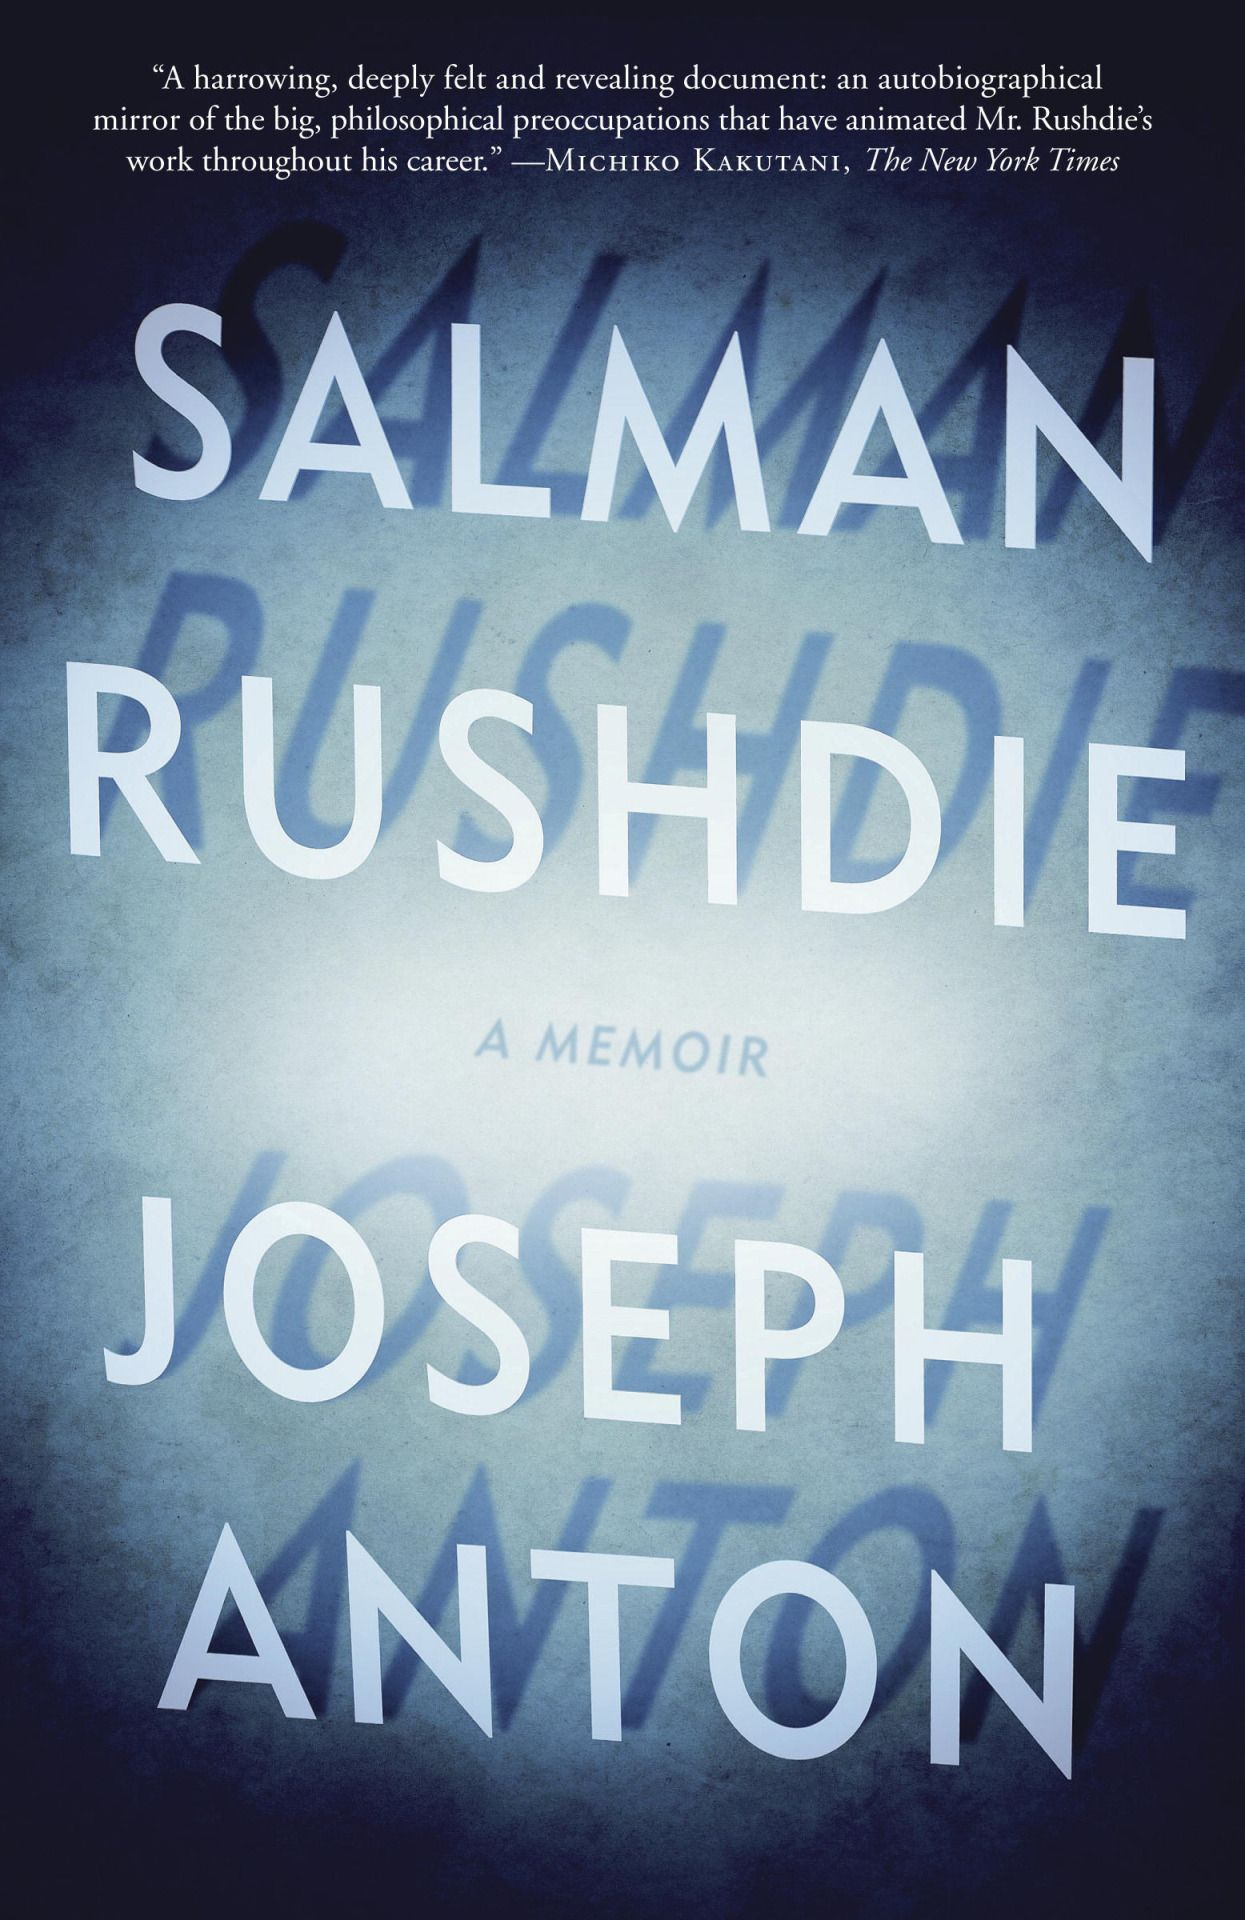 Book cover for Random House Trade Paperbacks | Art Director: Robbin Schiff | Designer: Andrea Geremia | Published 2013